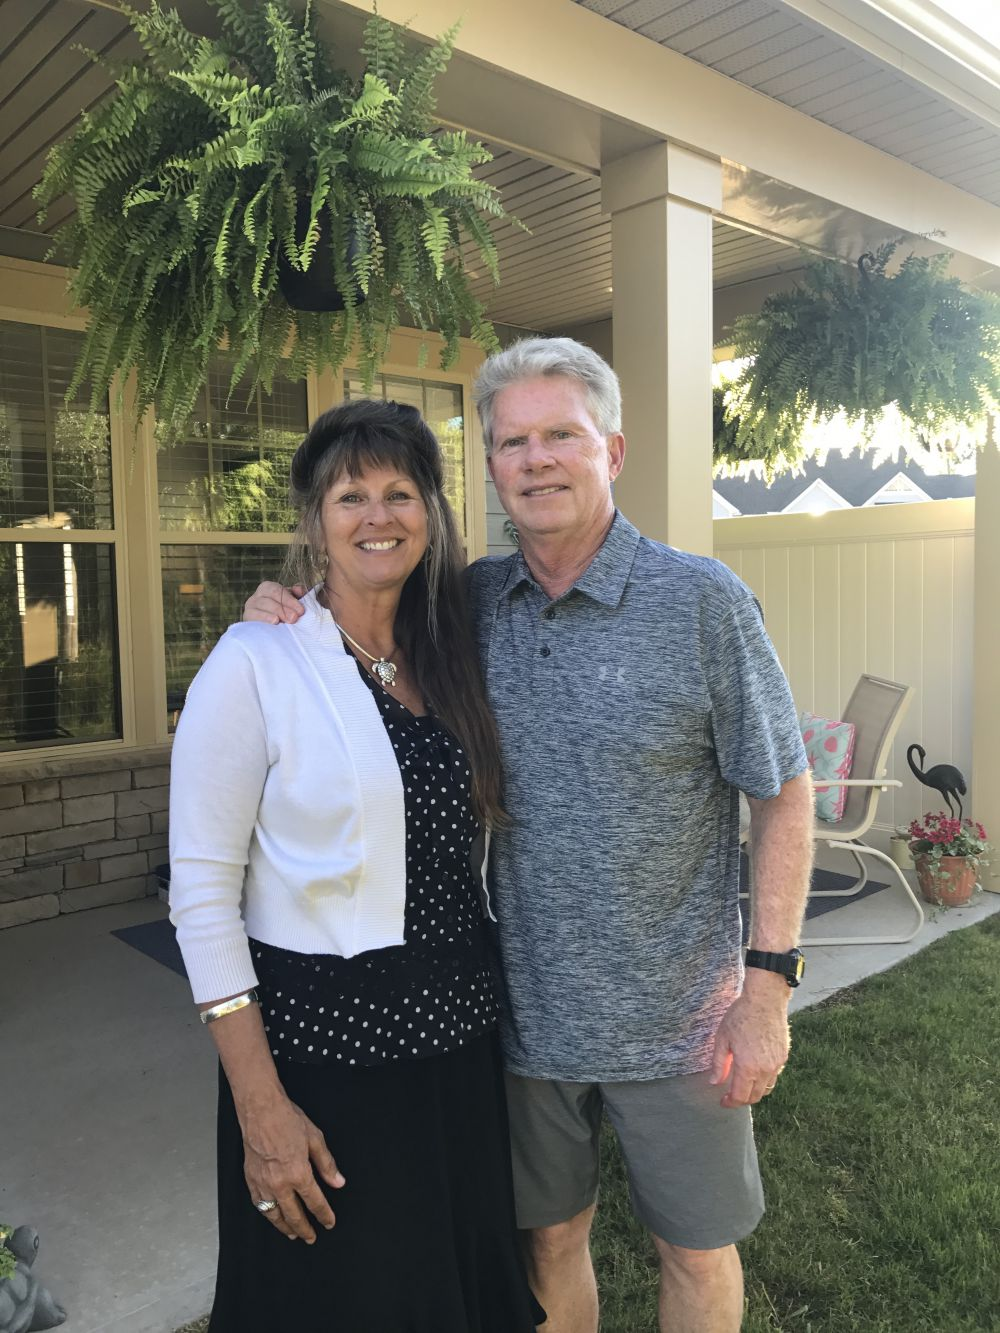 Steve and Kathy Akridge